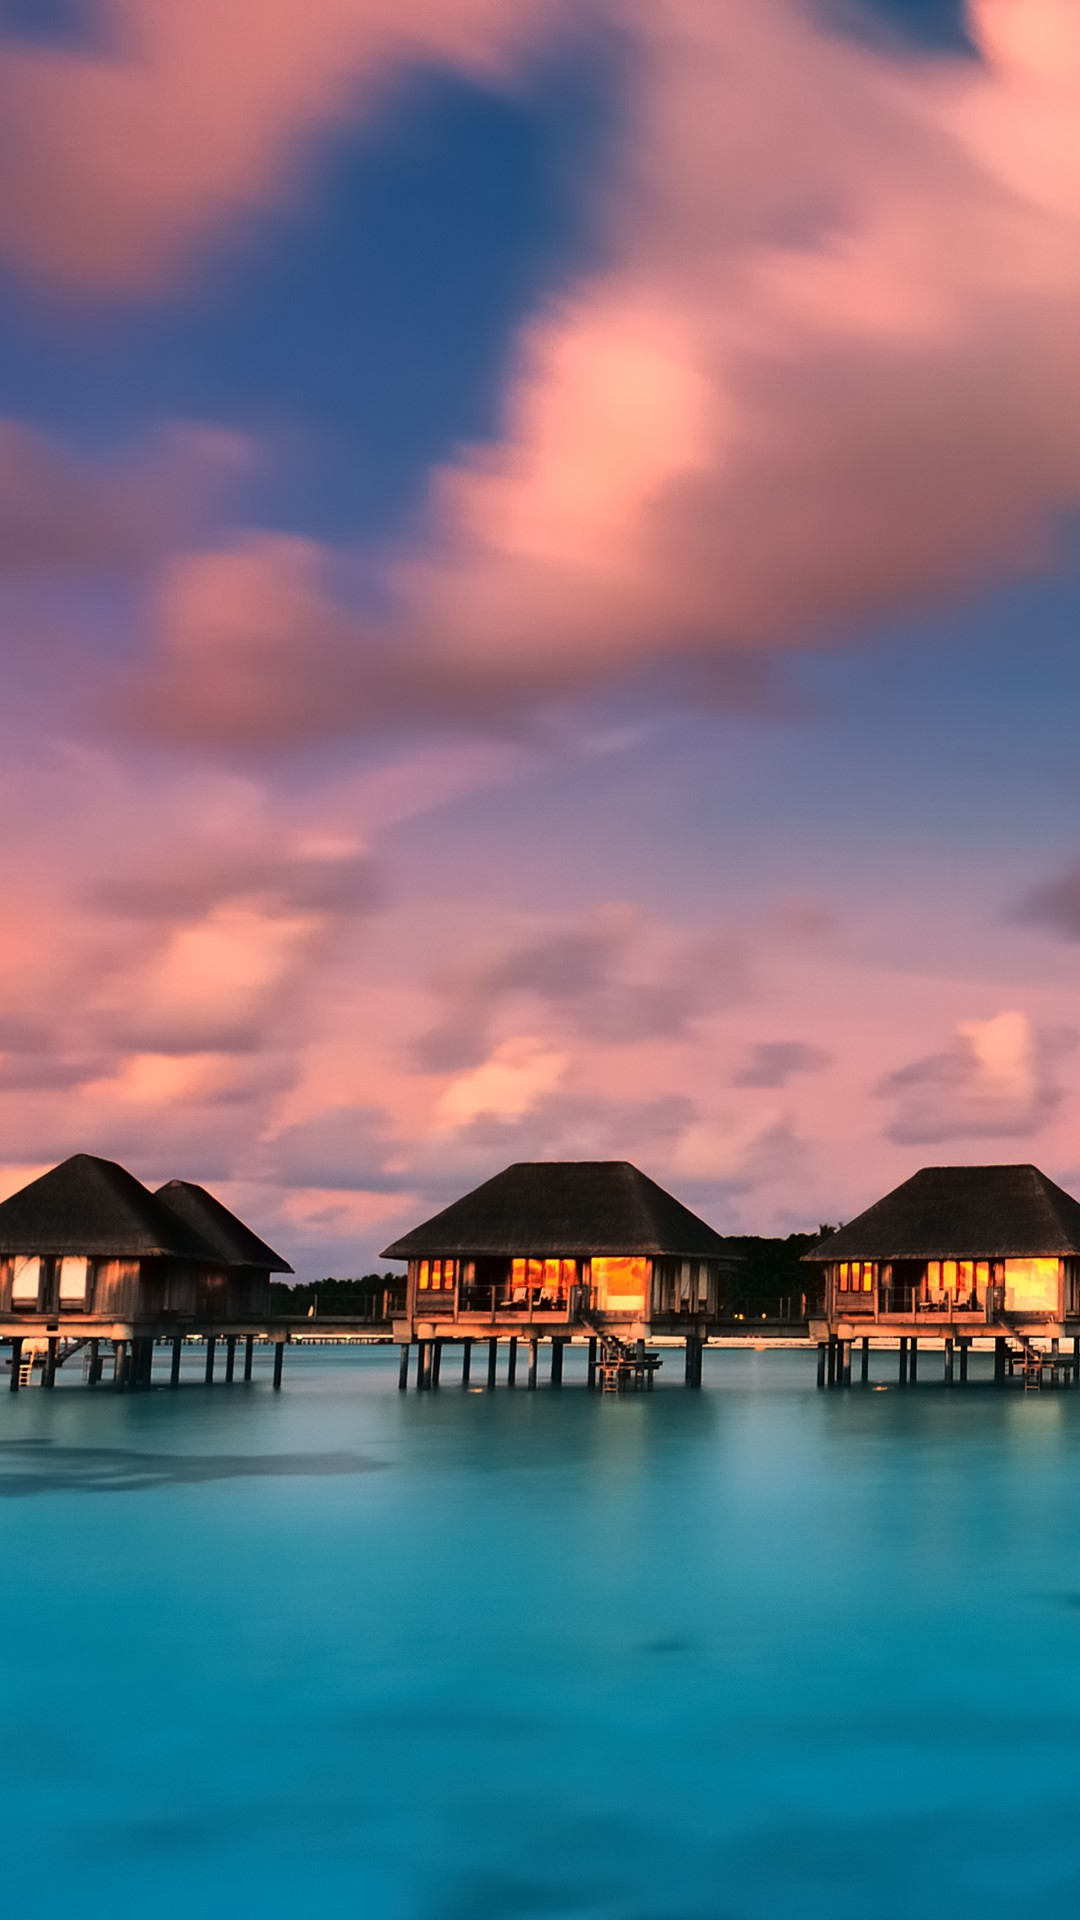 Water Bungalows With Beautiful Twilight Sky And Sea In